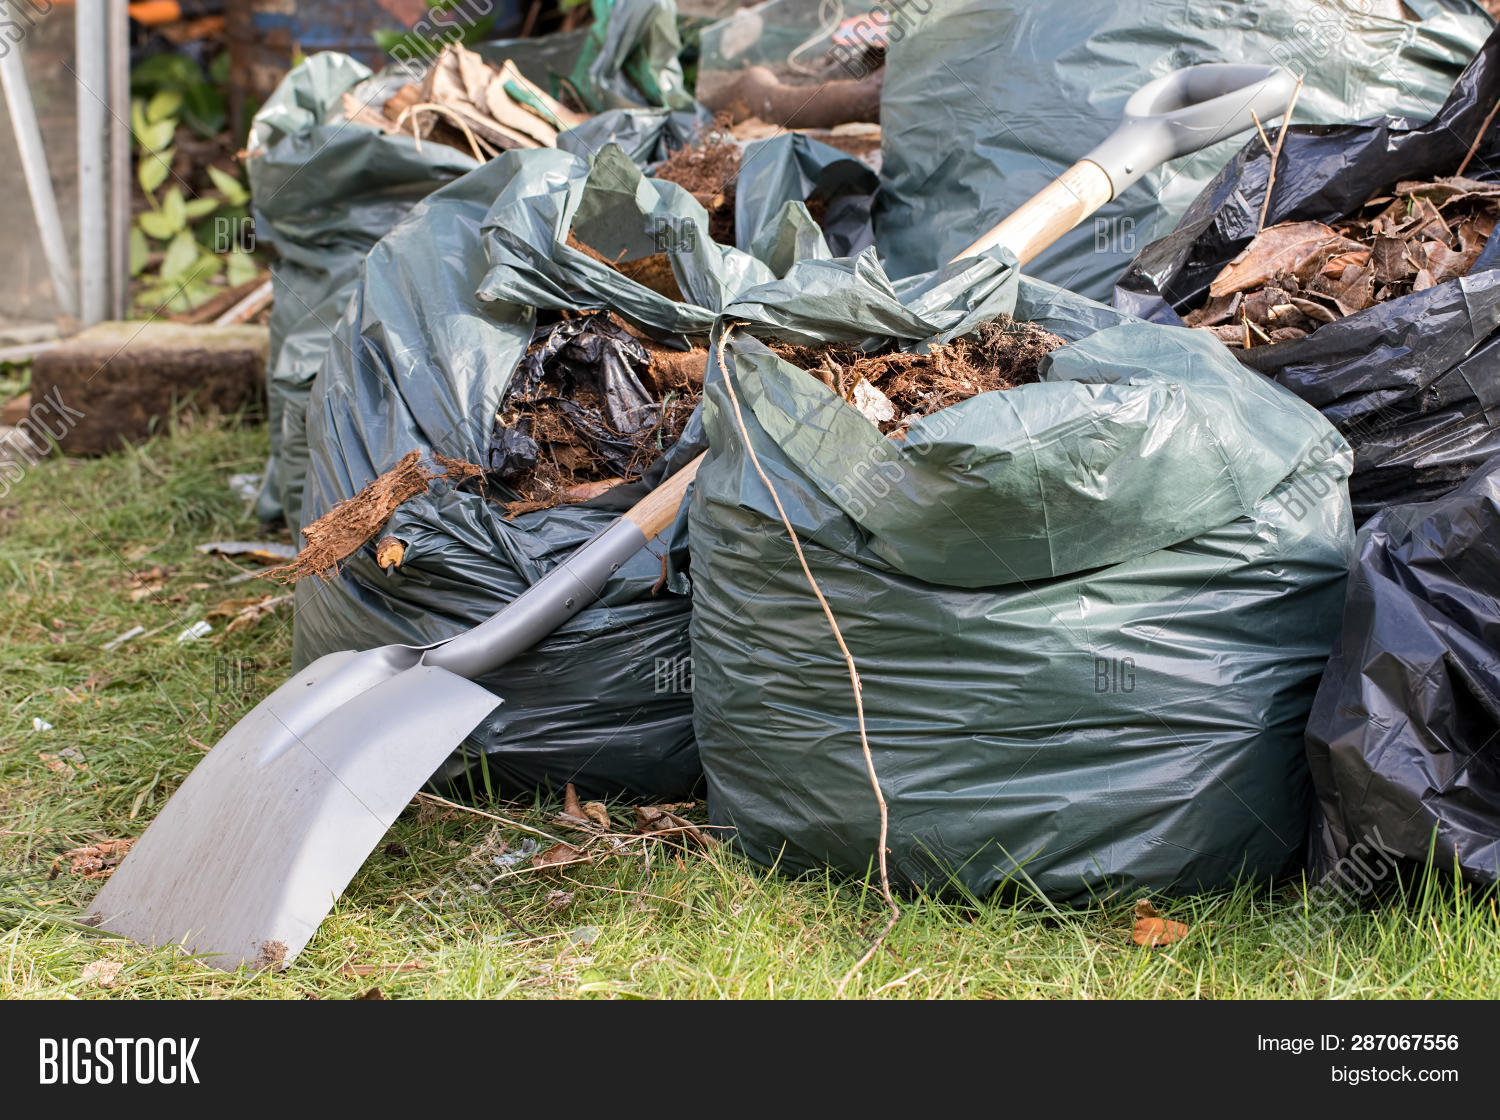 bag,brown,chore,cleaning,collected,environment,garbage,garden,gardener,gardening,home,horticulture,lawn,leaves,managing,recycle,recycling,refuse,rubbish,sack,shovel,spade,tidy,tidying,trash,up,waste